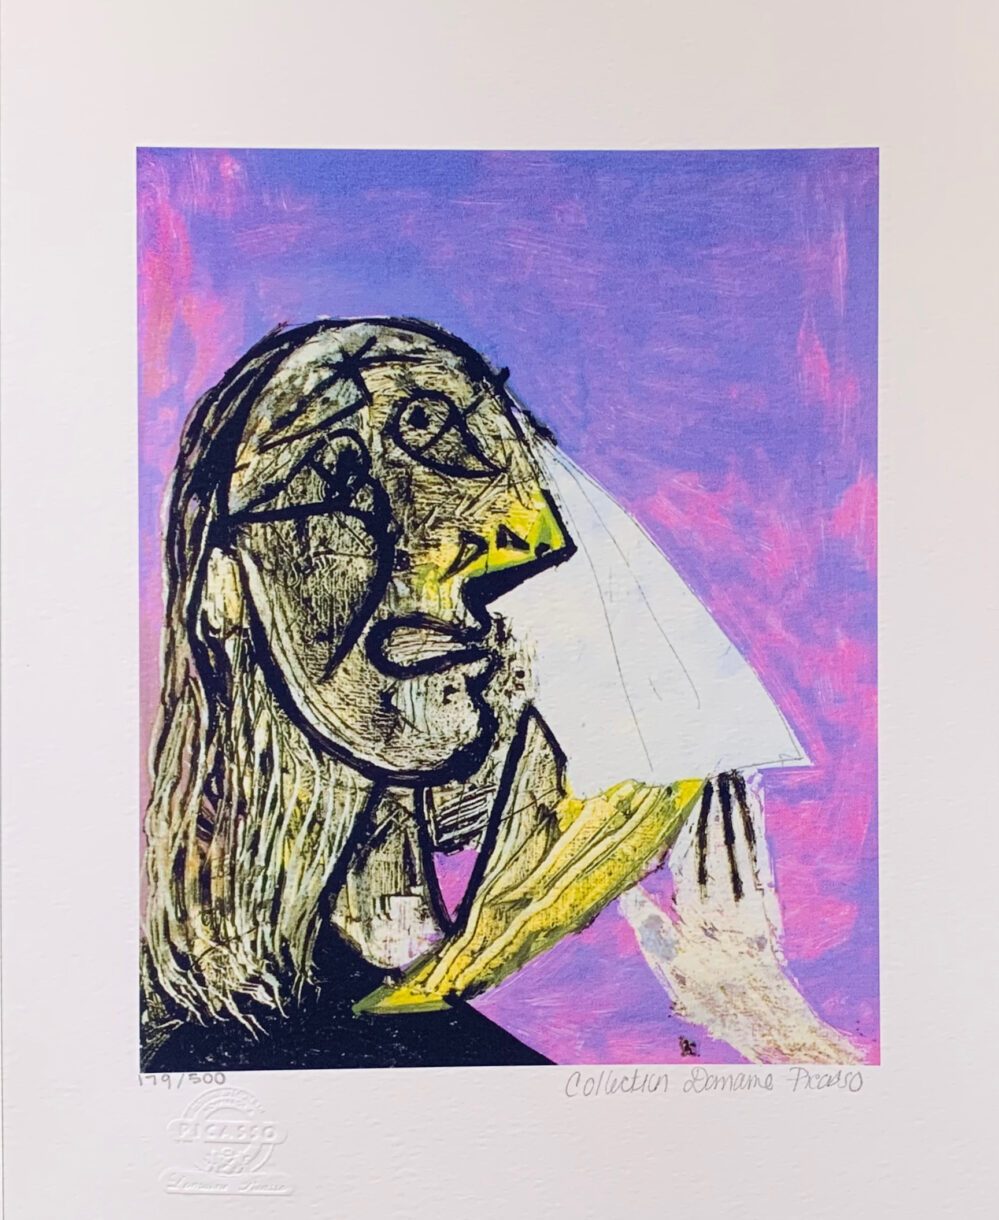 Pablo Picasso CRYING WOMAN Estate Signed Limited Edition Small Giclee